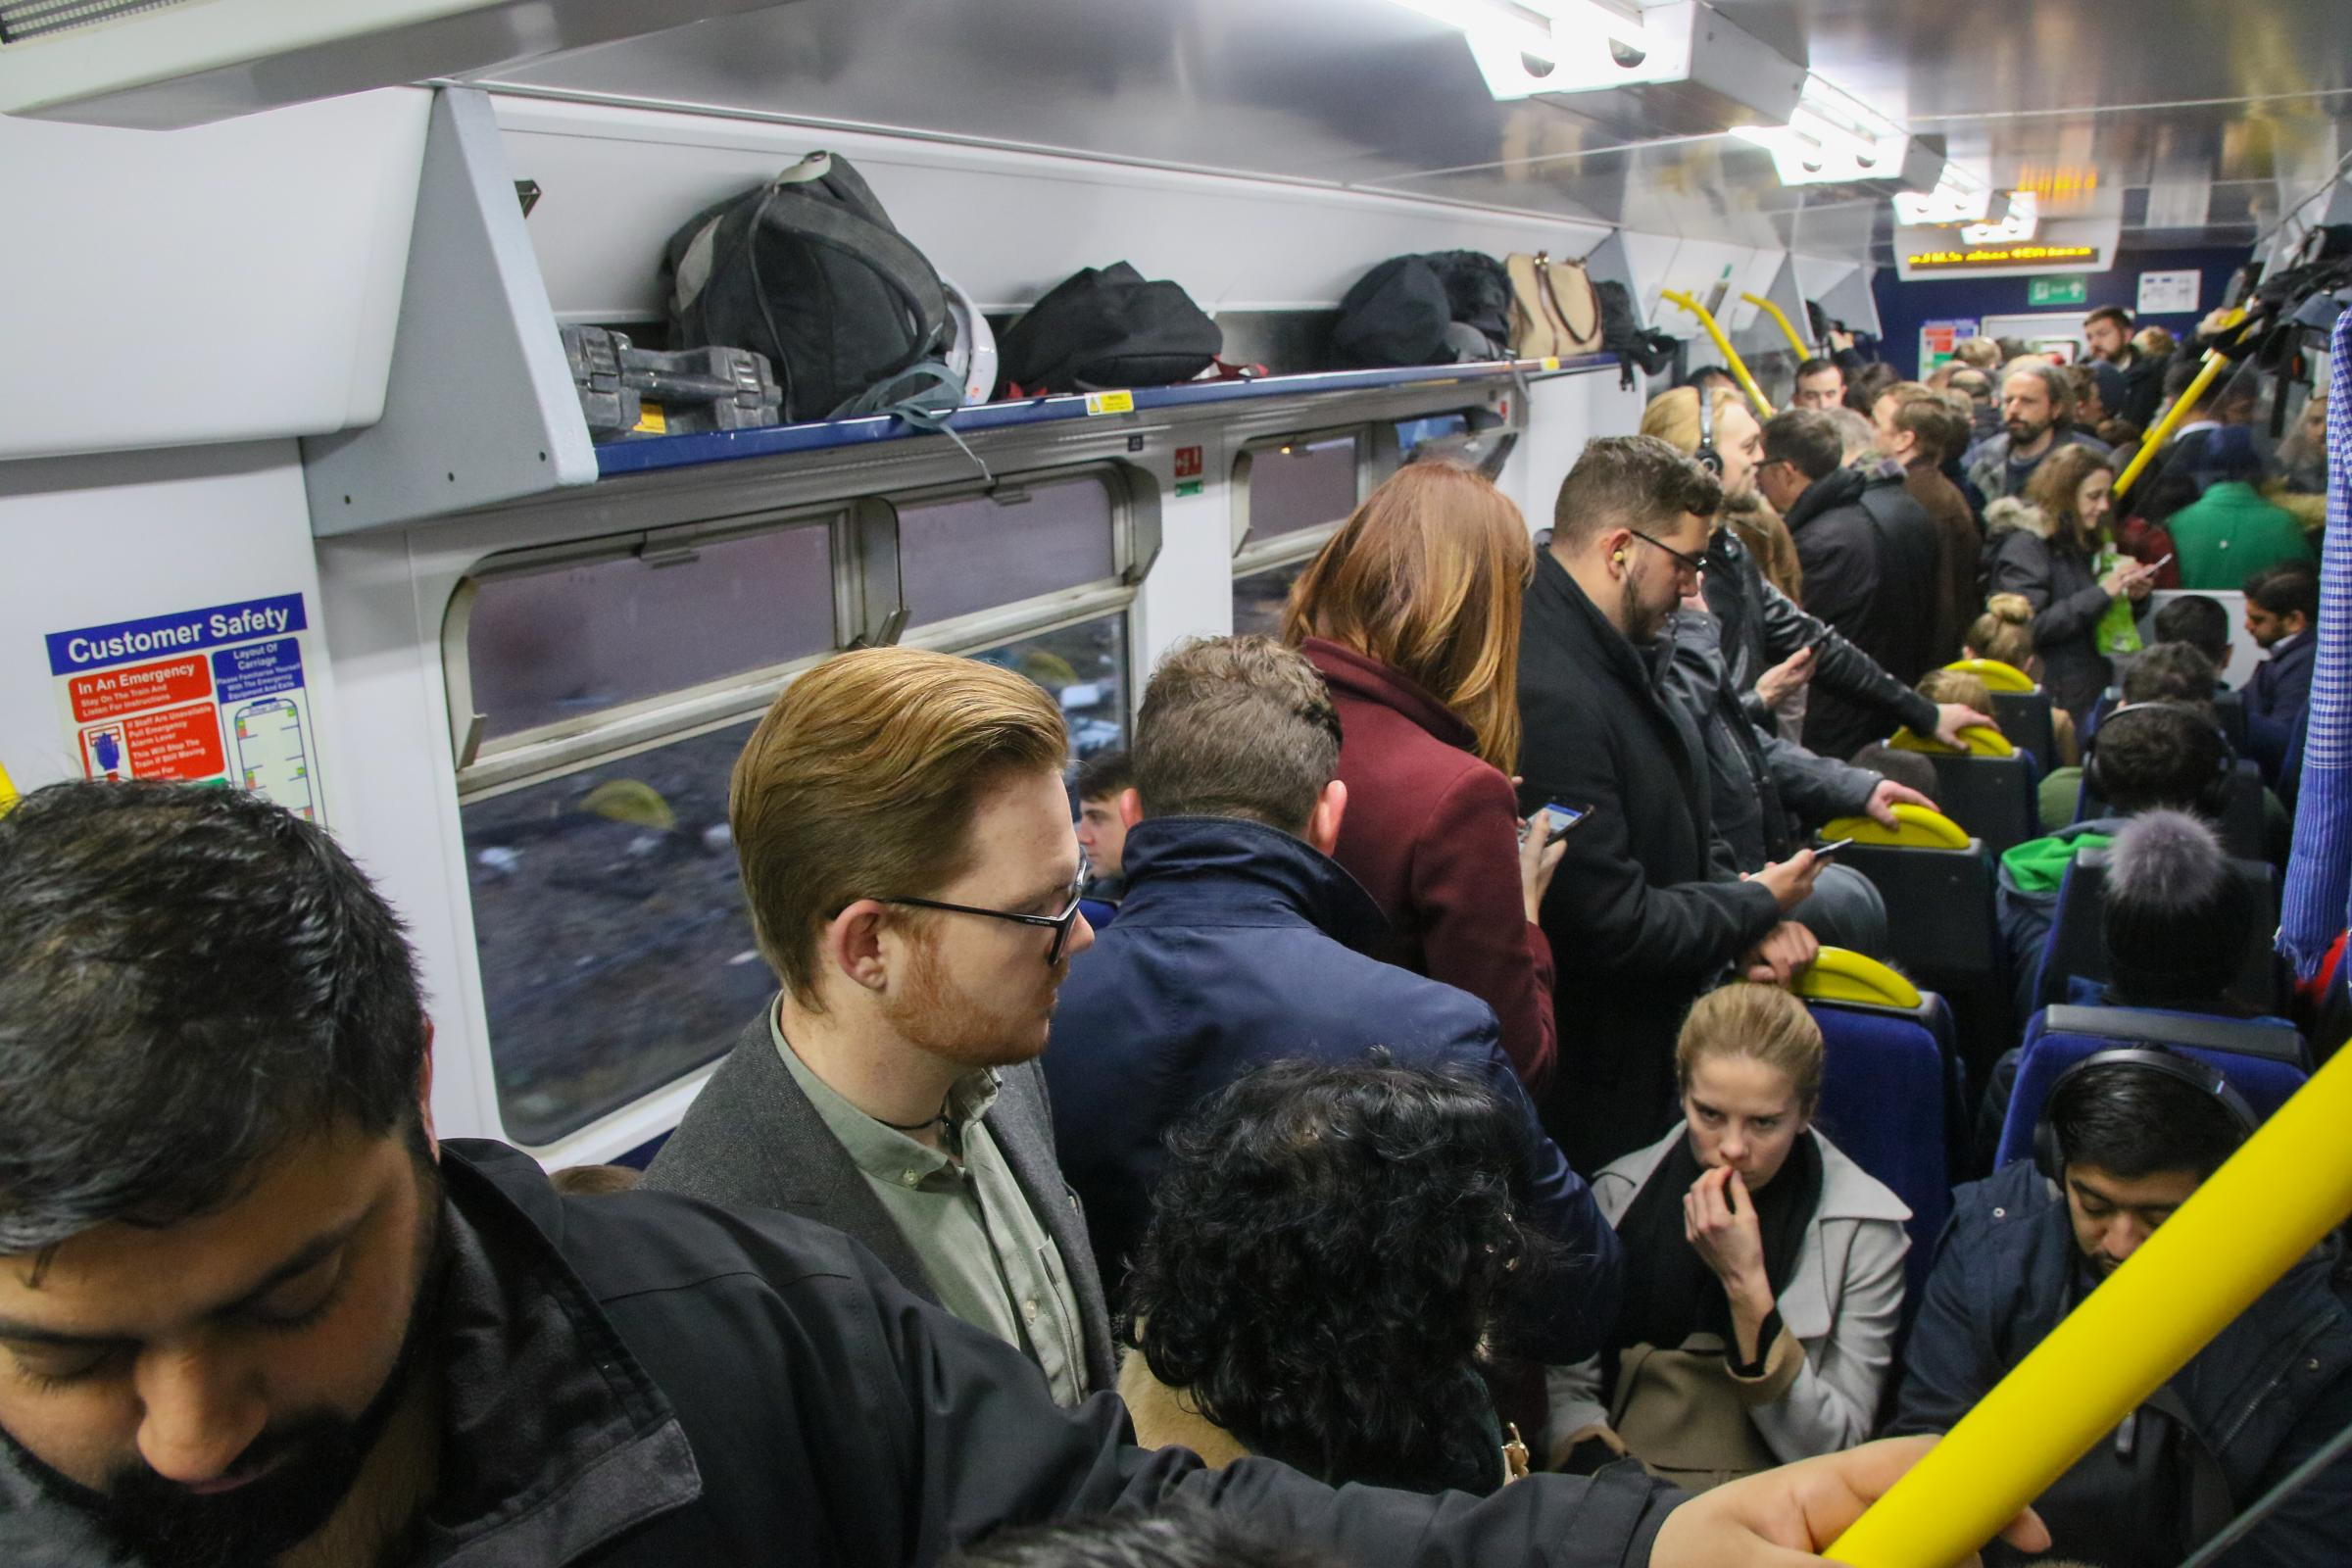 12 December 2018. Nanchester. Picture shows overcrowding on the 8:17 service from Bolton, Lancashire to Rochdale, Lancashire via Manchester Victoria operated by Northern Rail. On this occasion, a 2 carriage train was being operated, where a 4 carriage tra